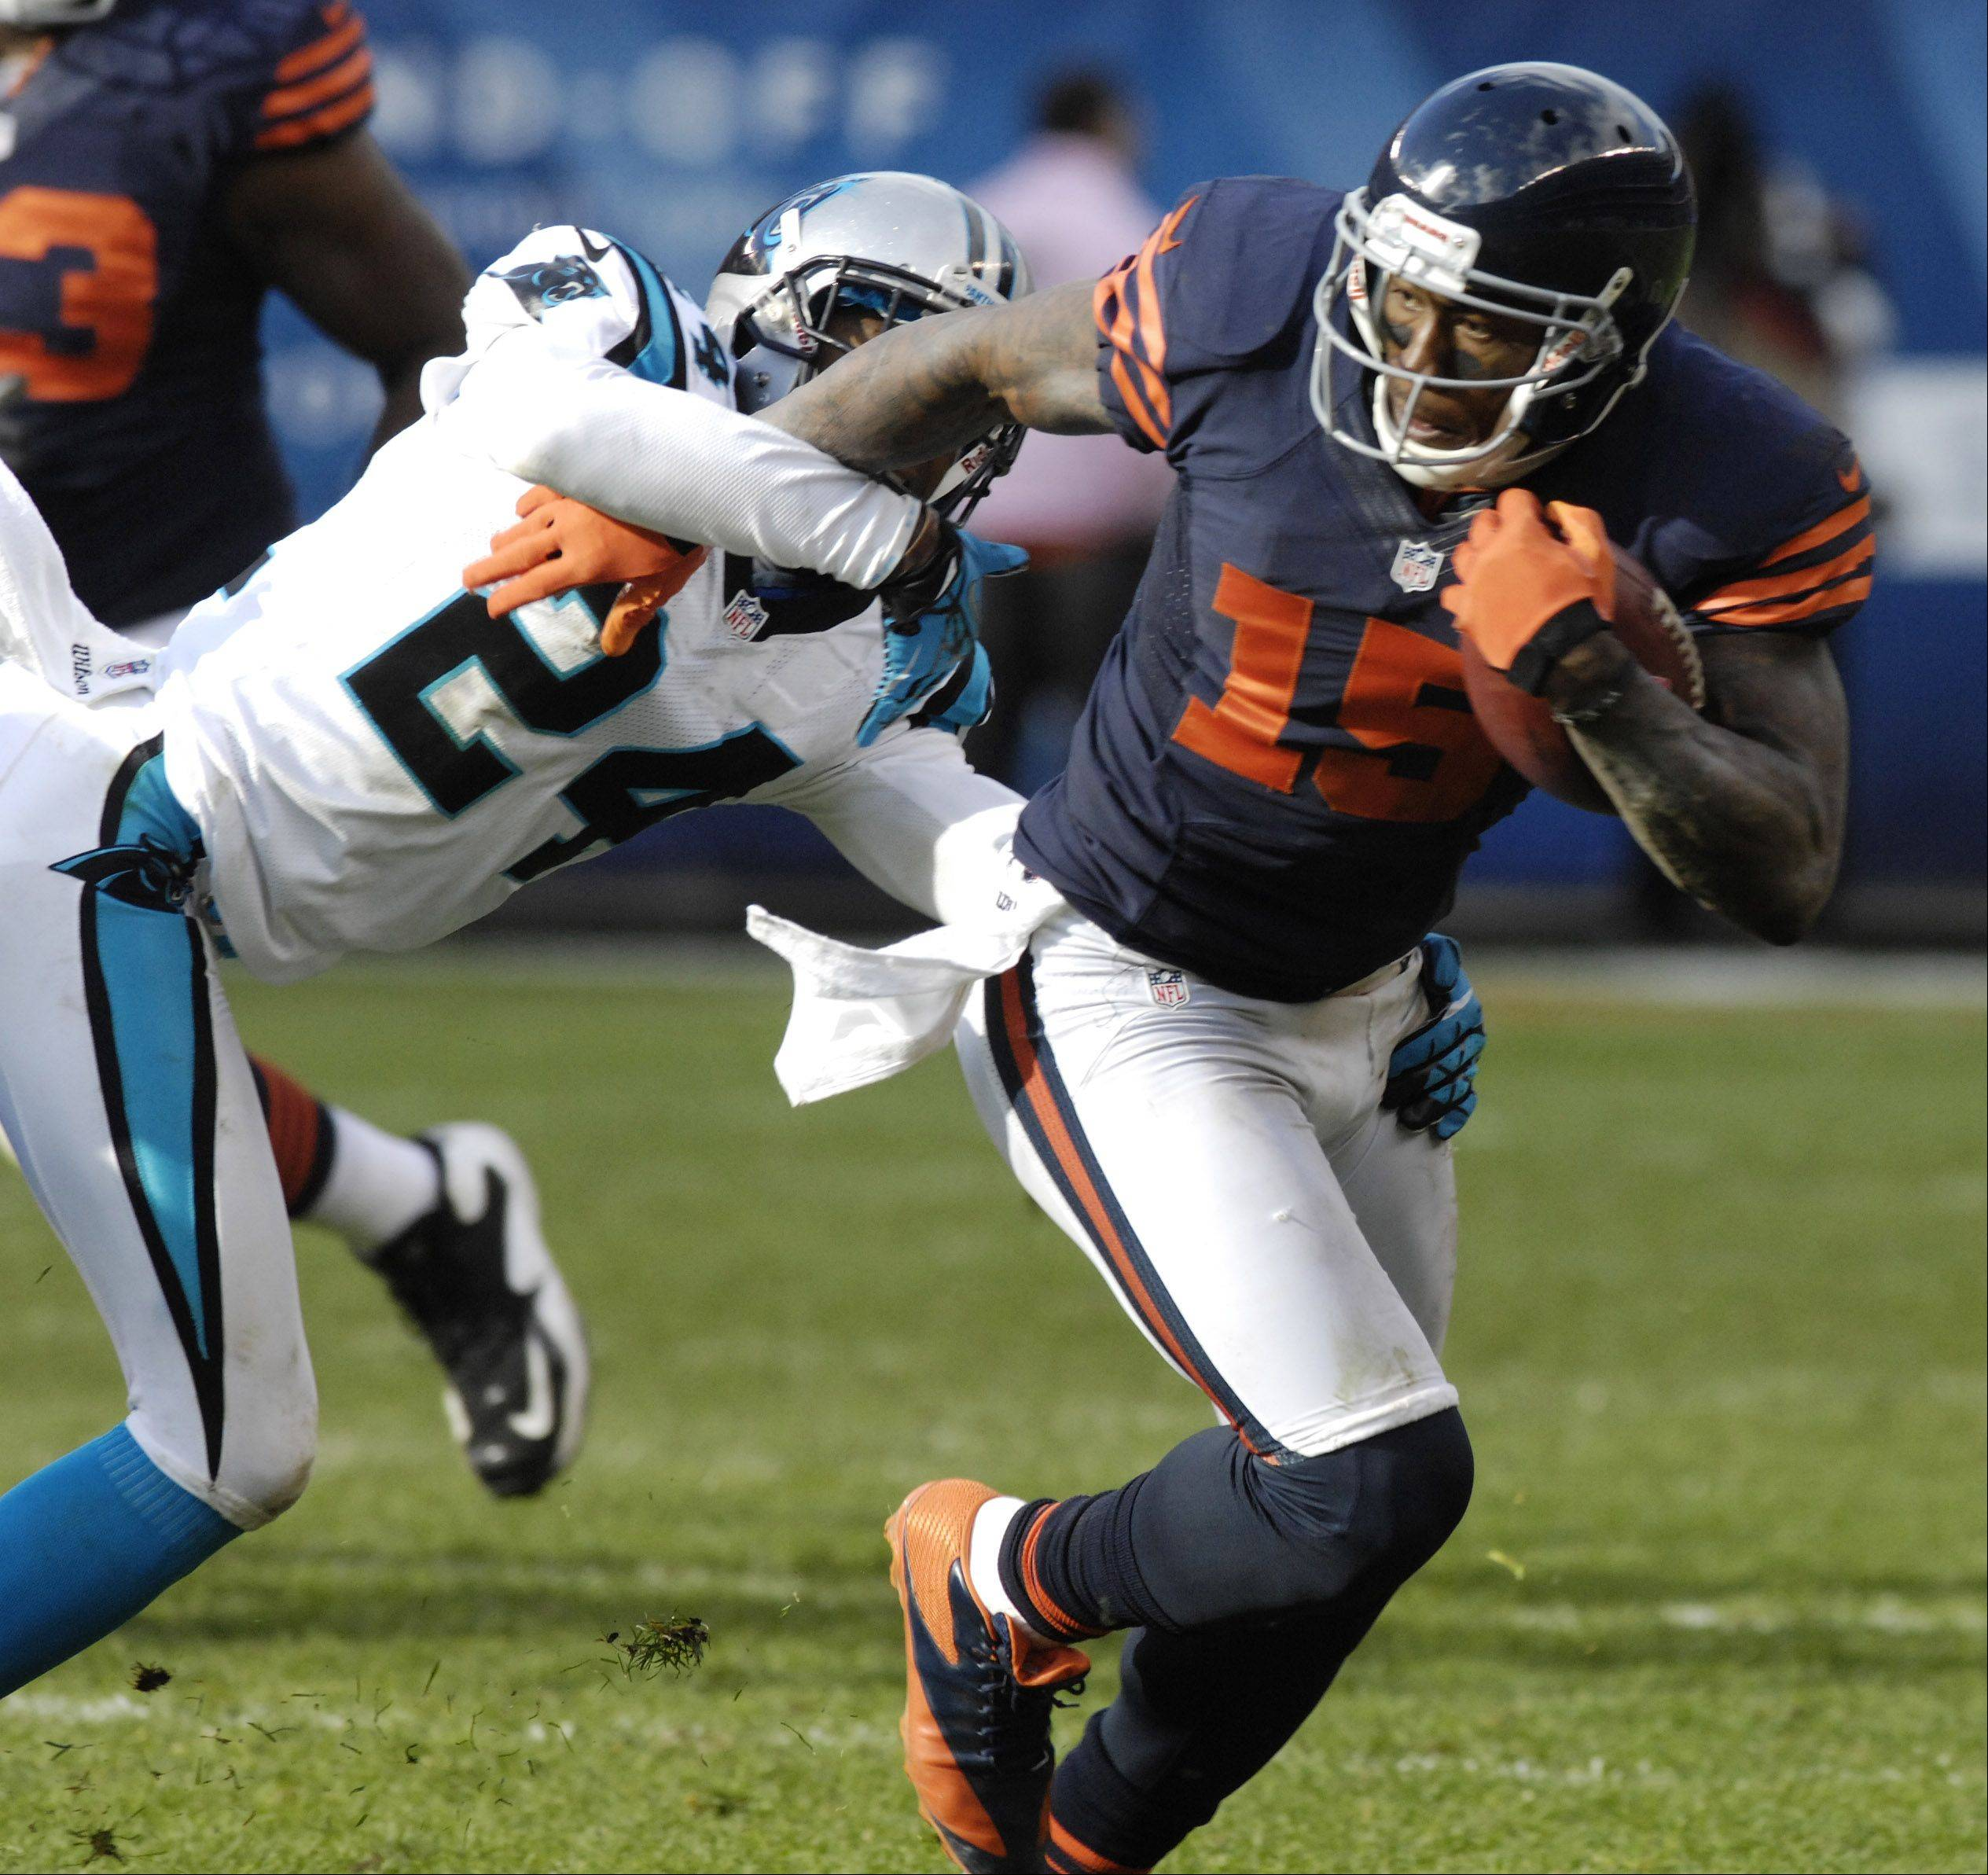 Chicago Bears wide receiver Brandon Marshall helps his team get within field-goal range while being pursued by Carolina Panthers defensive back Josh Norman during Sunday's game at Soldier Field.